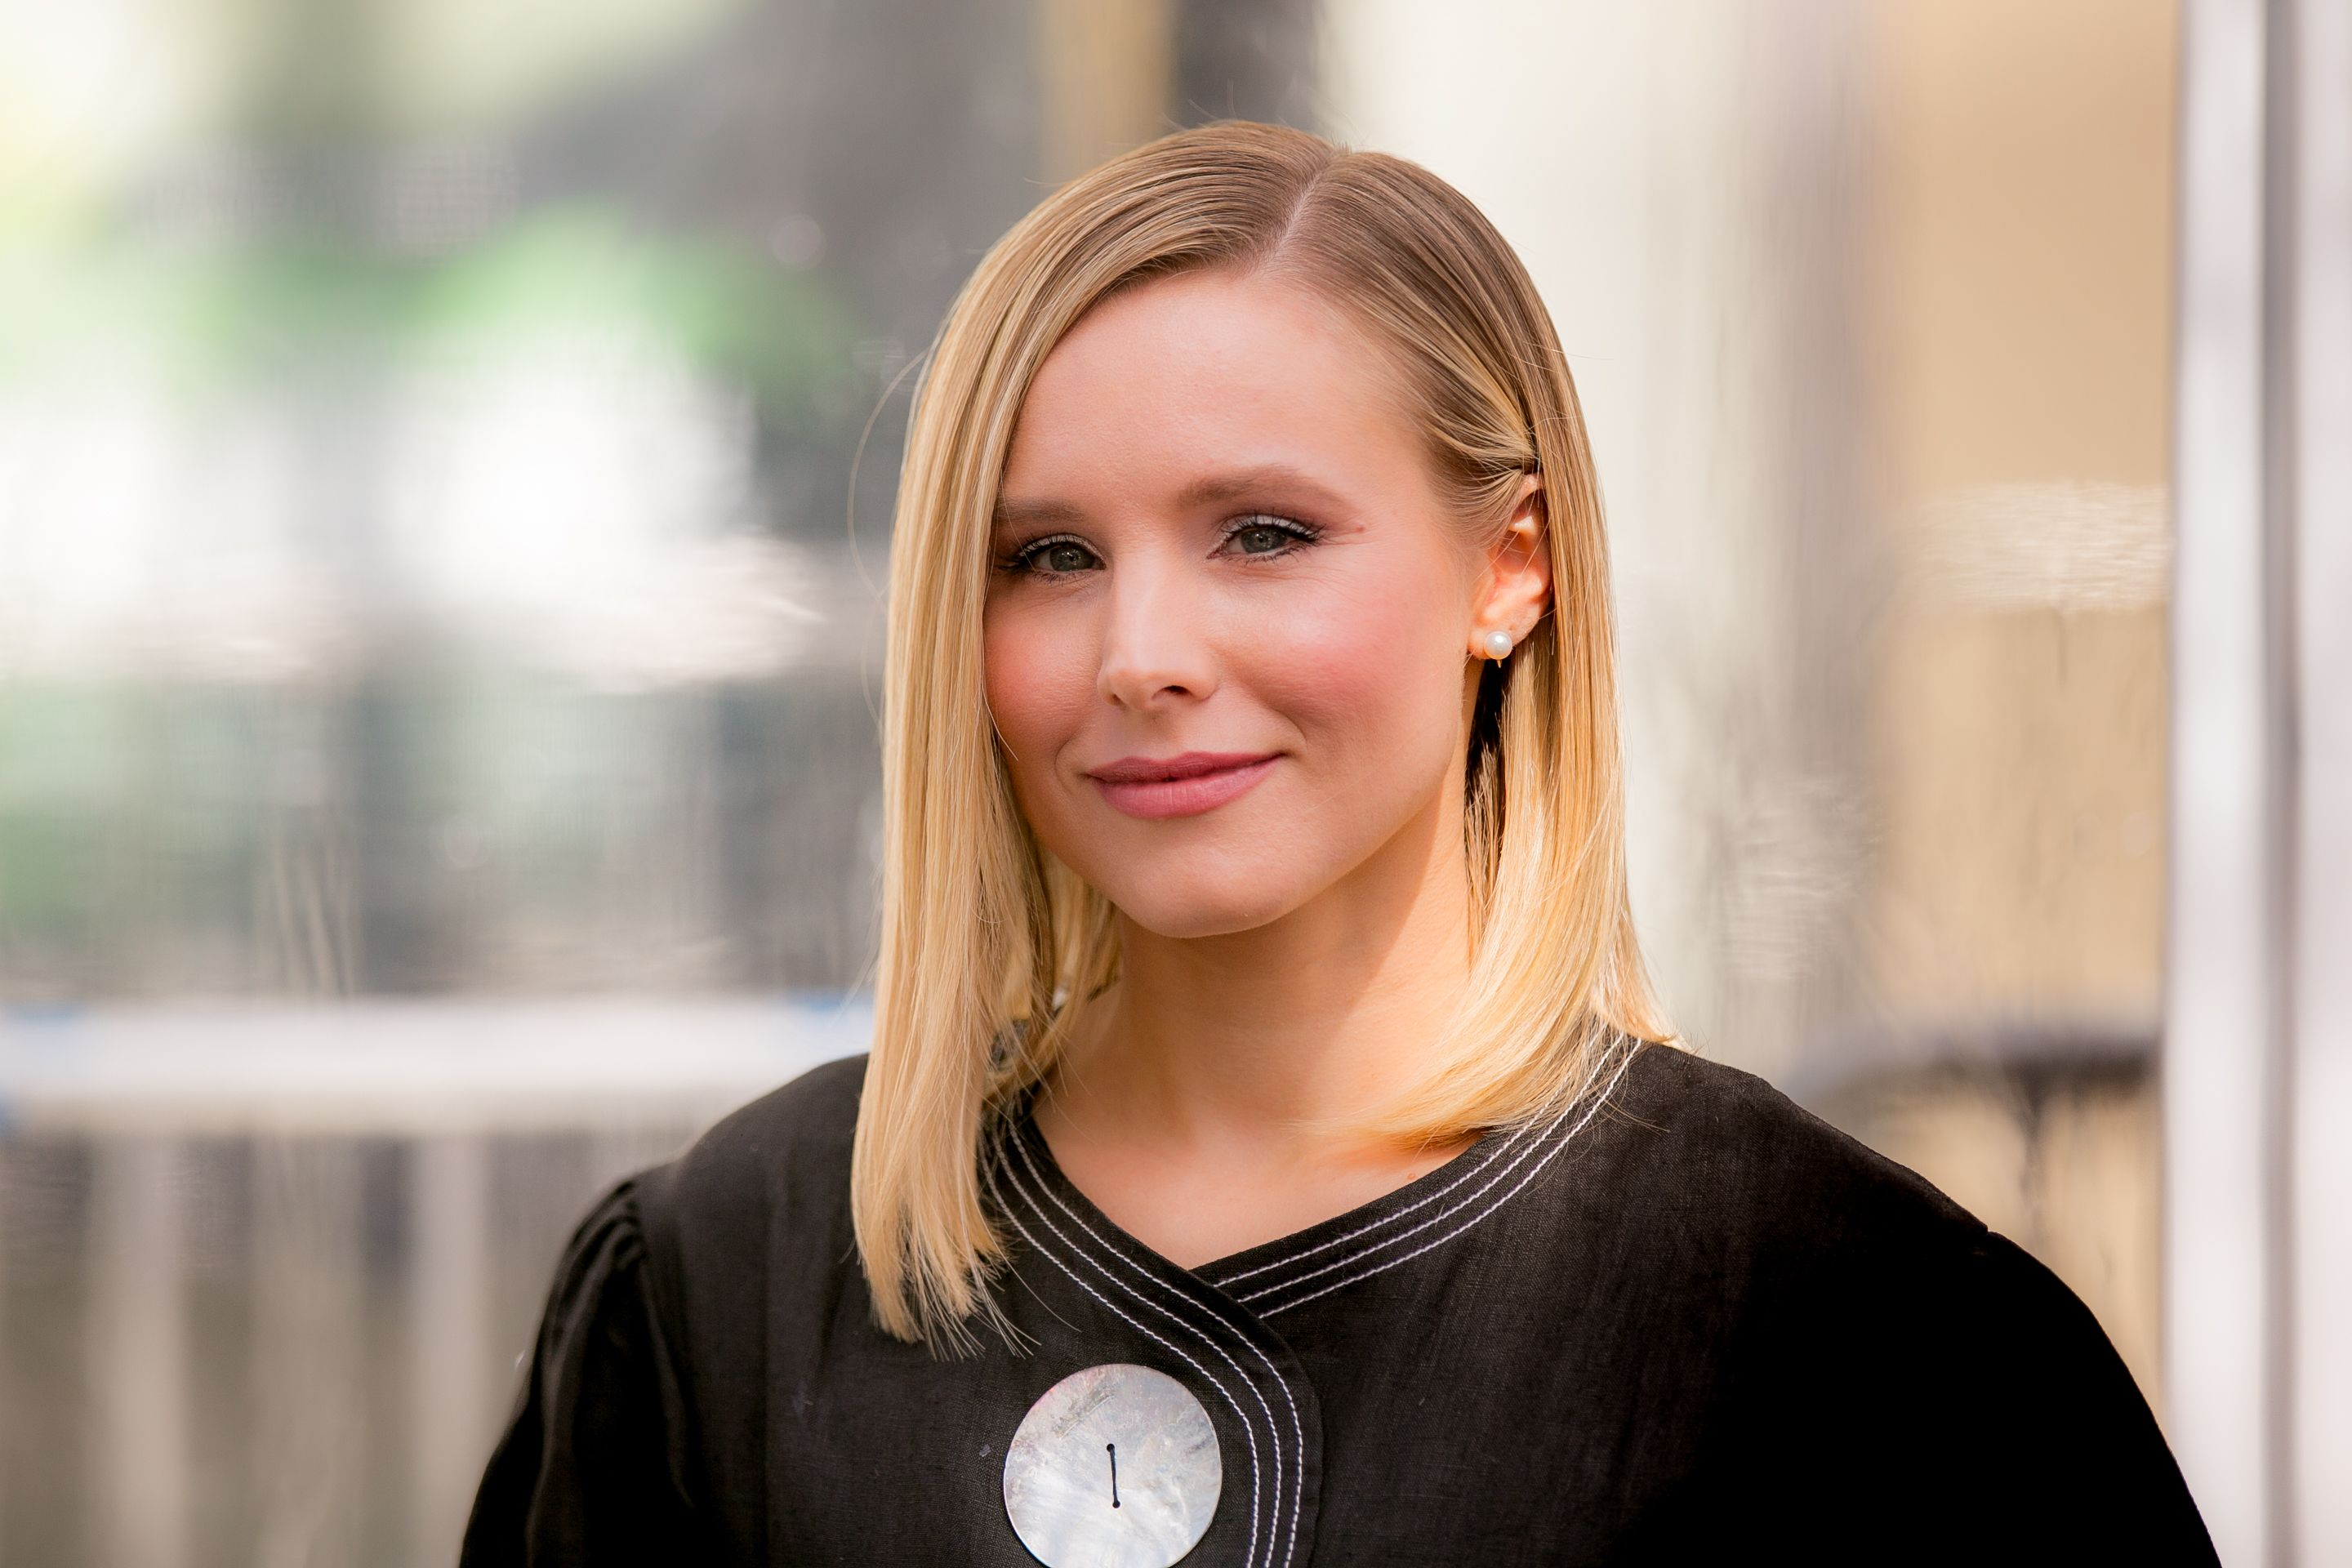 Kristen Bell Uses This Controversial Parenting Hack to Put Her 3-Year-Old to Bed